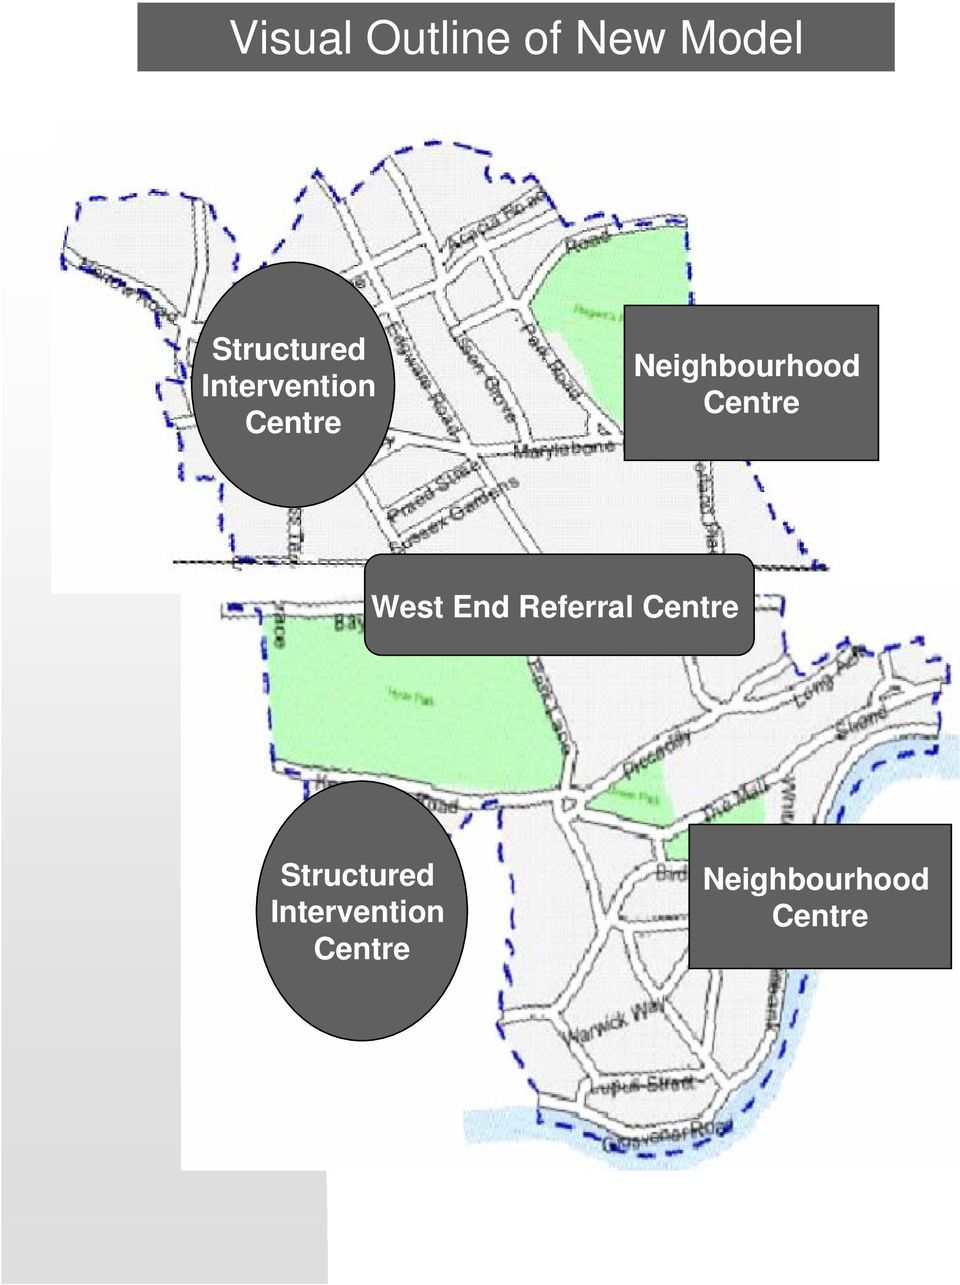 Centre West End Referral Centre